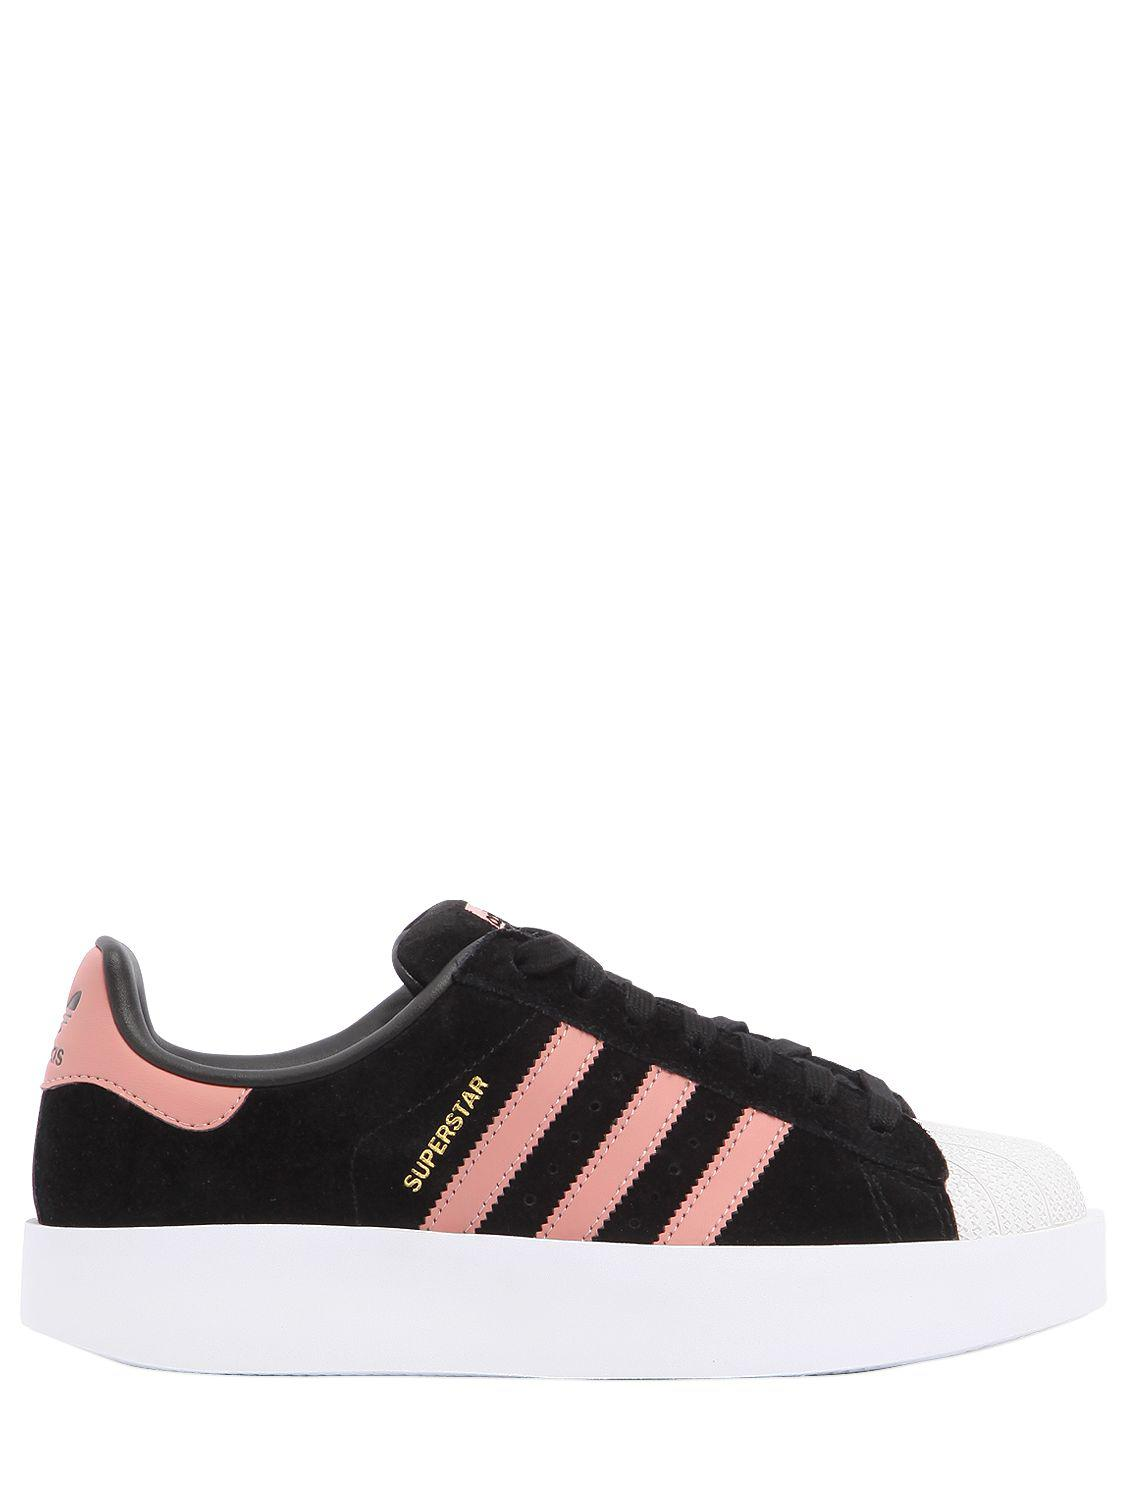 eaab2aed17fd Adidas Originals Superstar Bold Leather Sneakers in Black - Lyst